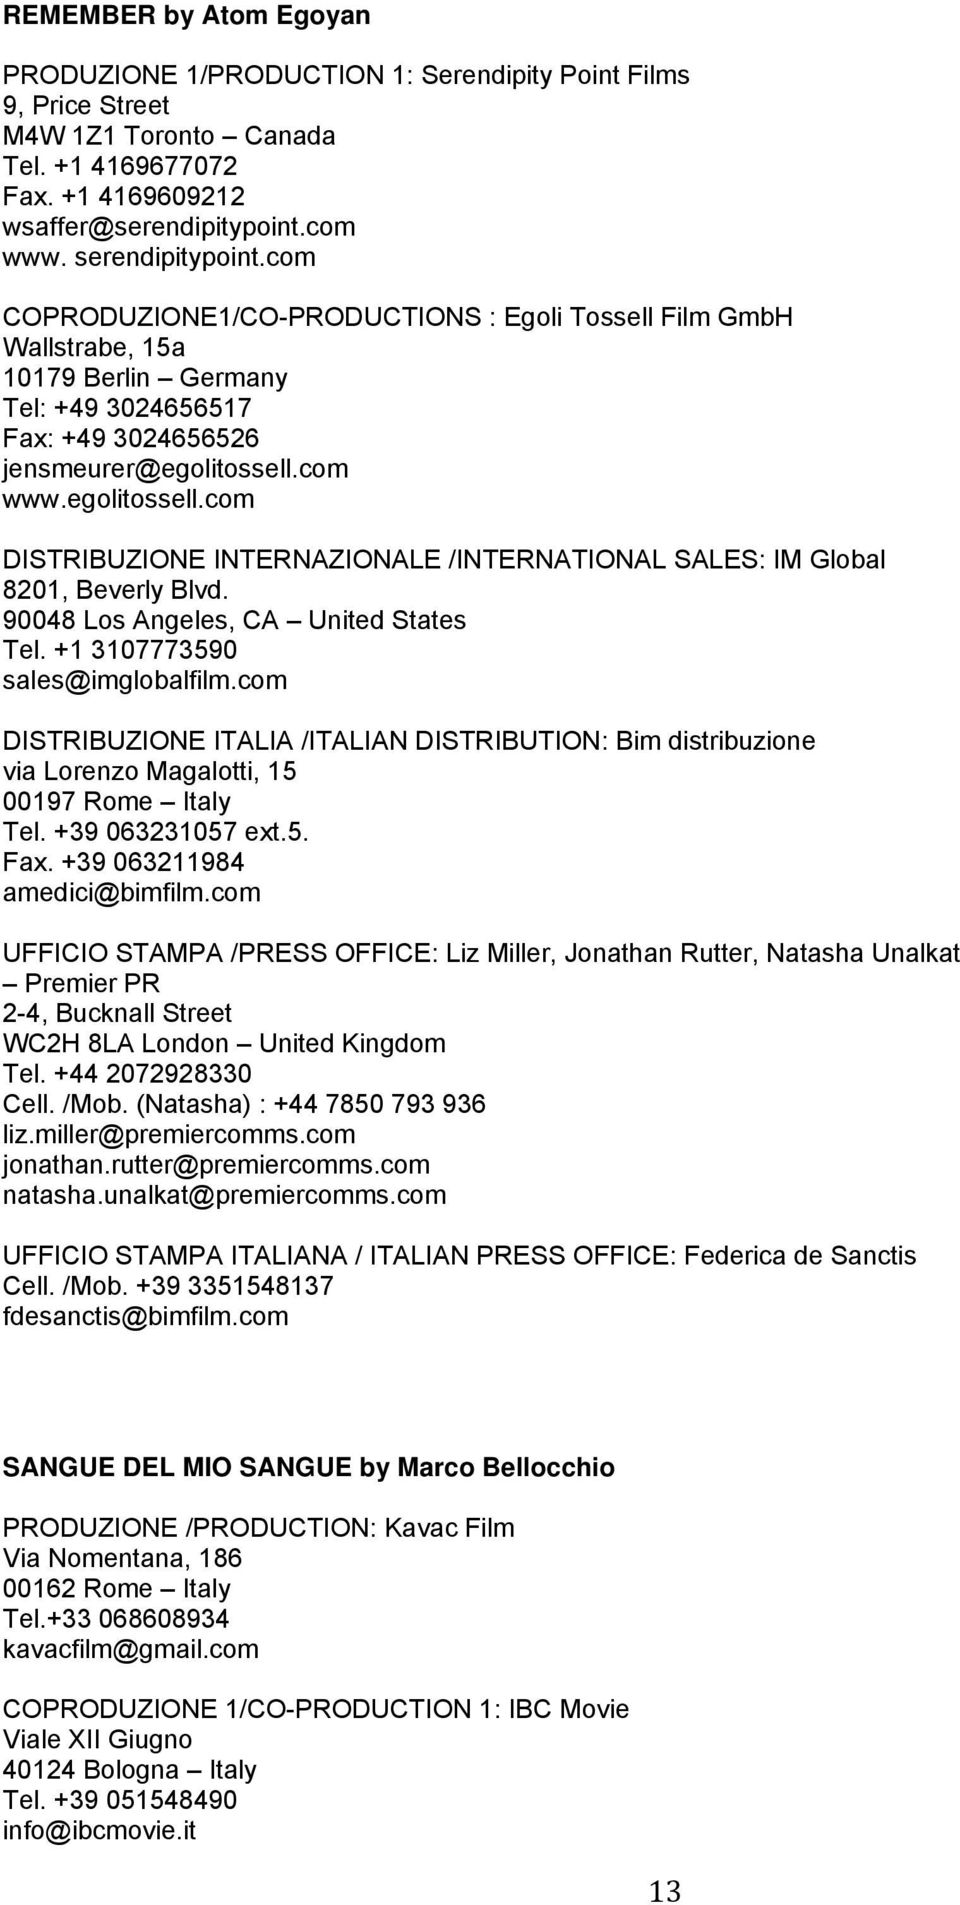 com www.egolitossell.com DISTRIBUZIONE INTERNAZIONALE /INTERNATIONAL SALES: IM Global 8201, Beverly Blvd. 90048 Los Angeles, CA United States Tel. +1 3107773590 sales@imglobalfilm.